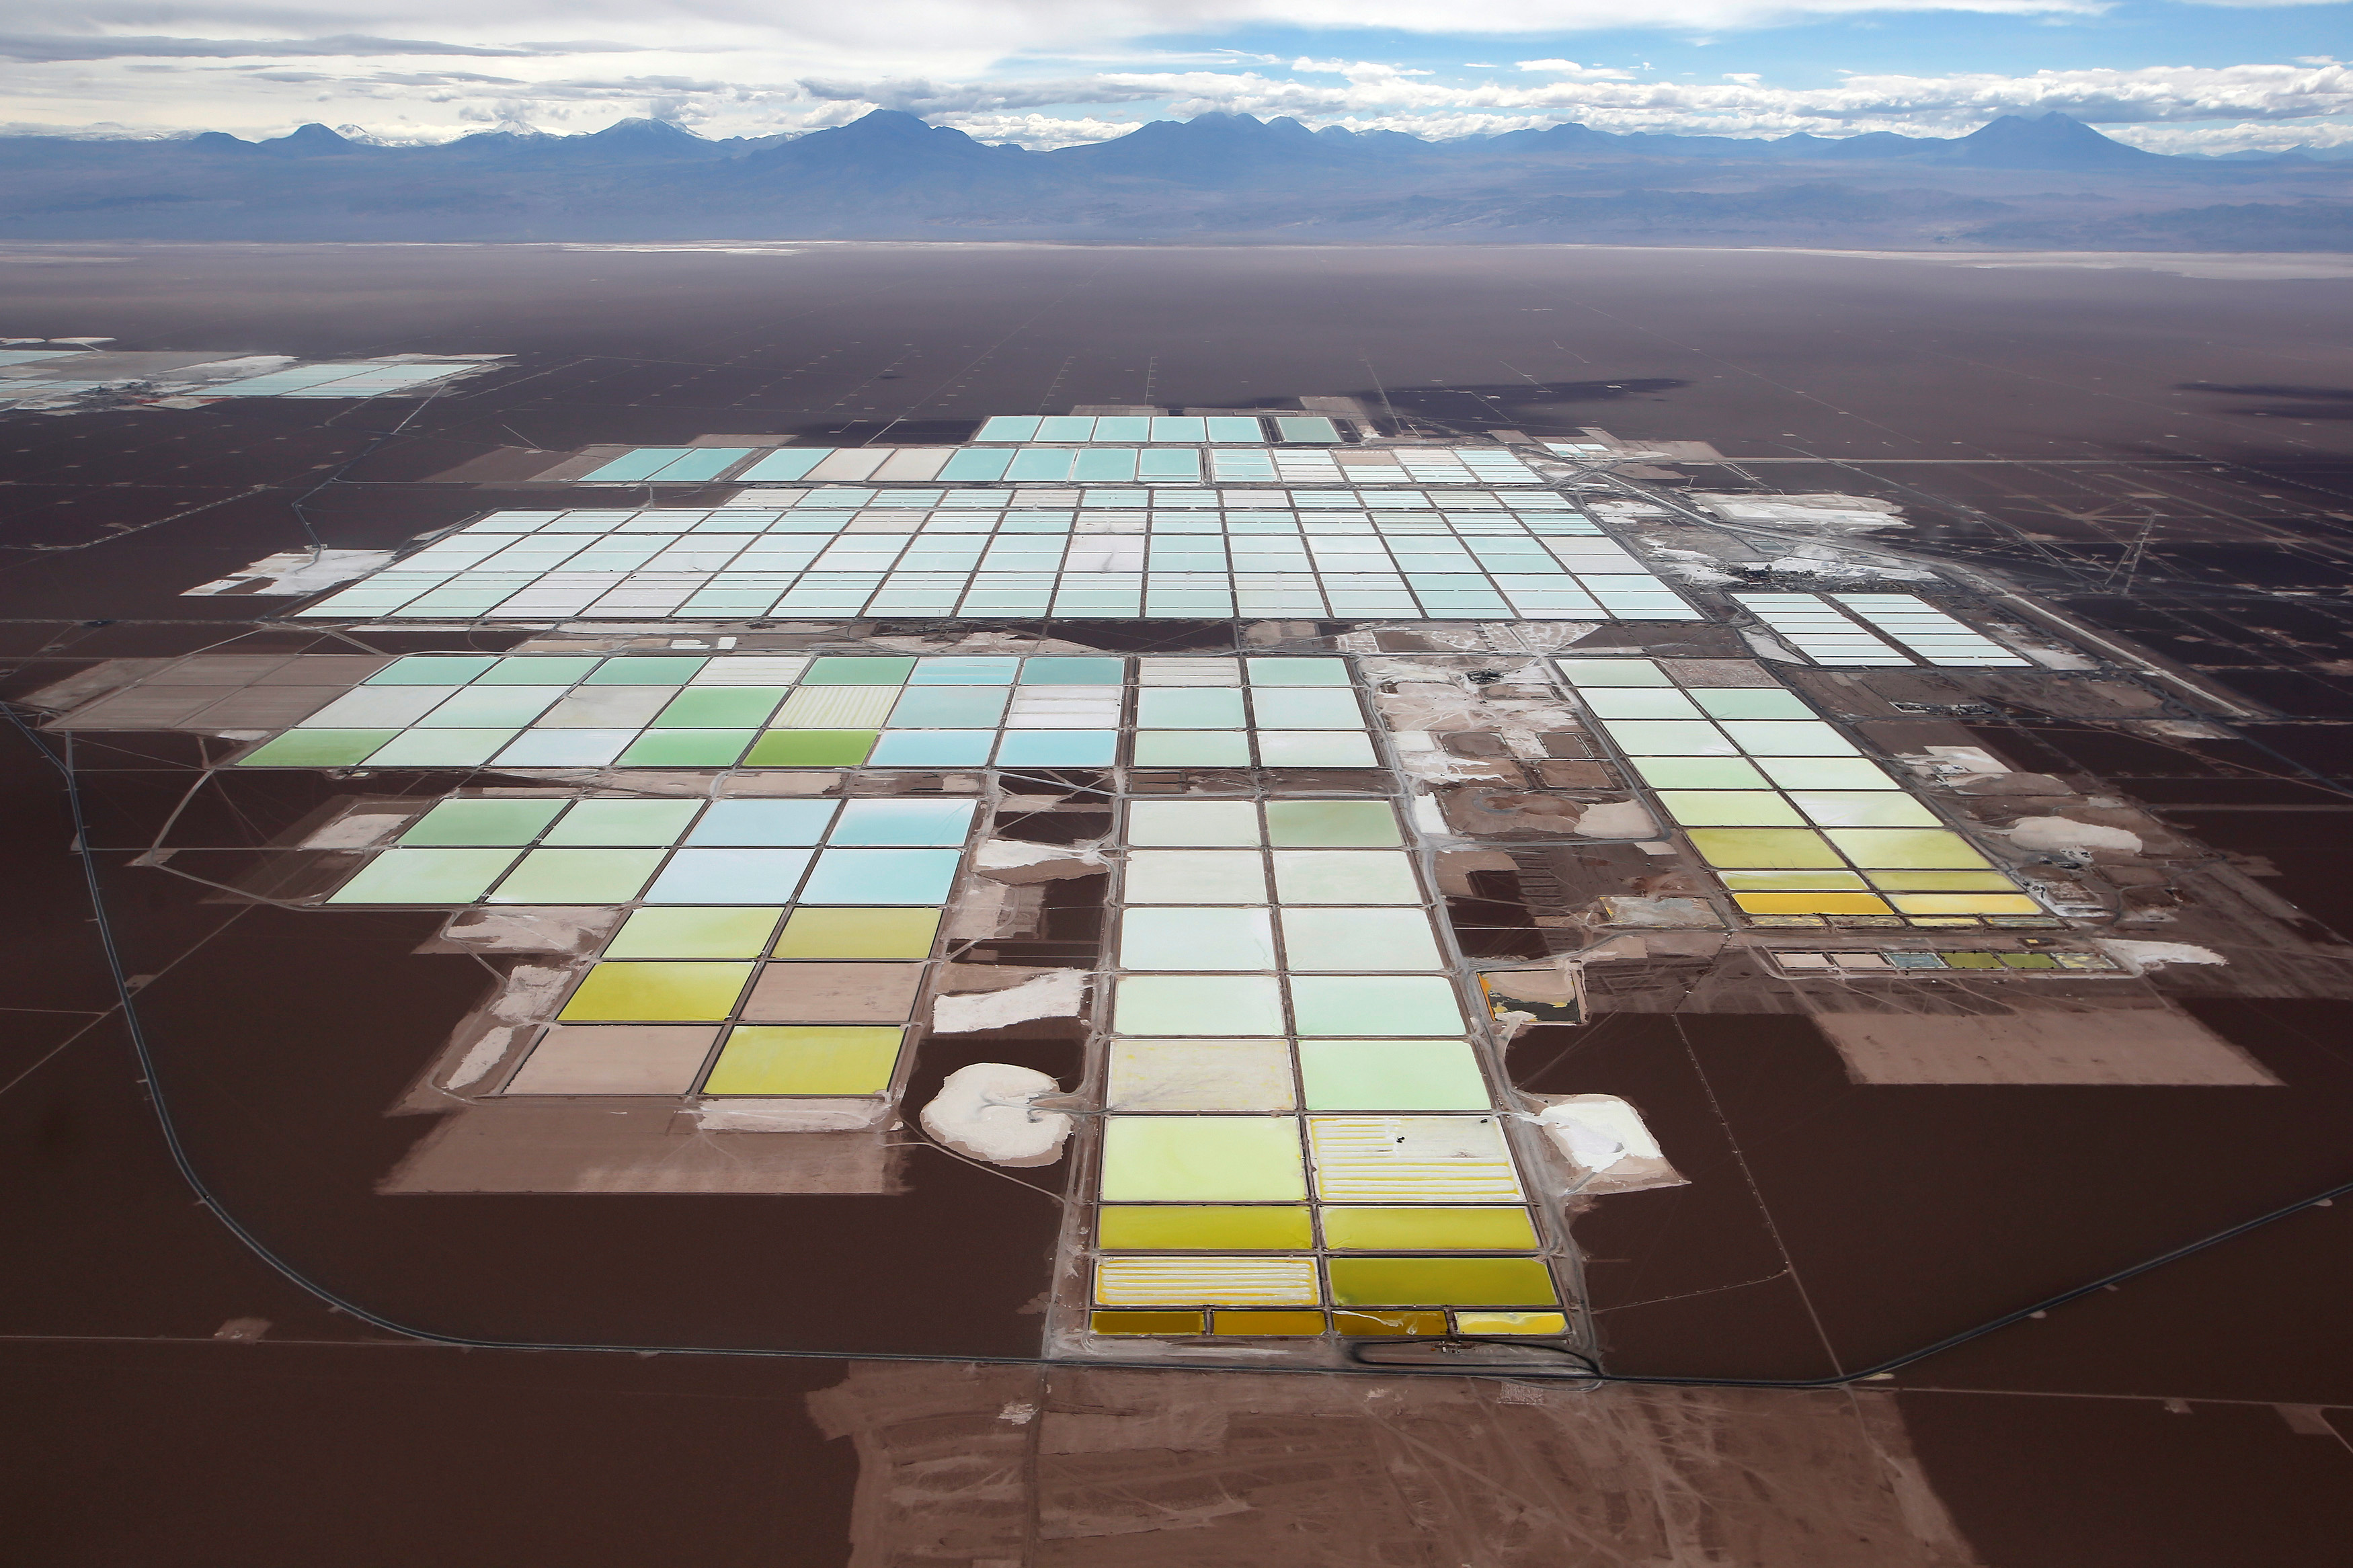 An aerial view shows the brine pools and processing areas of the Soquimich (SQM) lithium mine on the Atacama salt flat, the world's second largest salt flat and the largest lithium deposit currently in production, with over a quarter of the world's known reserves, in the Atacama desert of northern Chile, January 10, 2013.  REUTERS/Ivan Alvarado